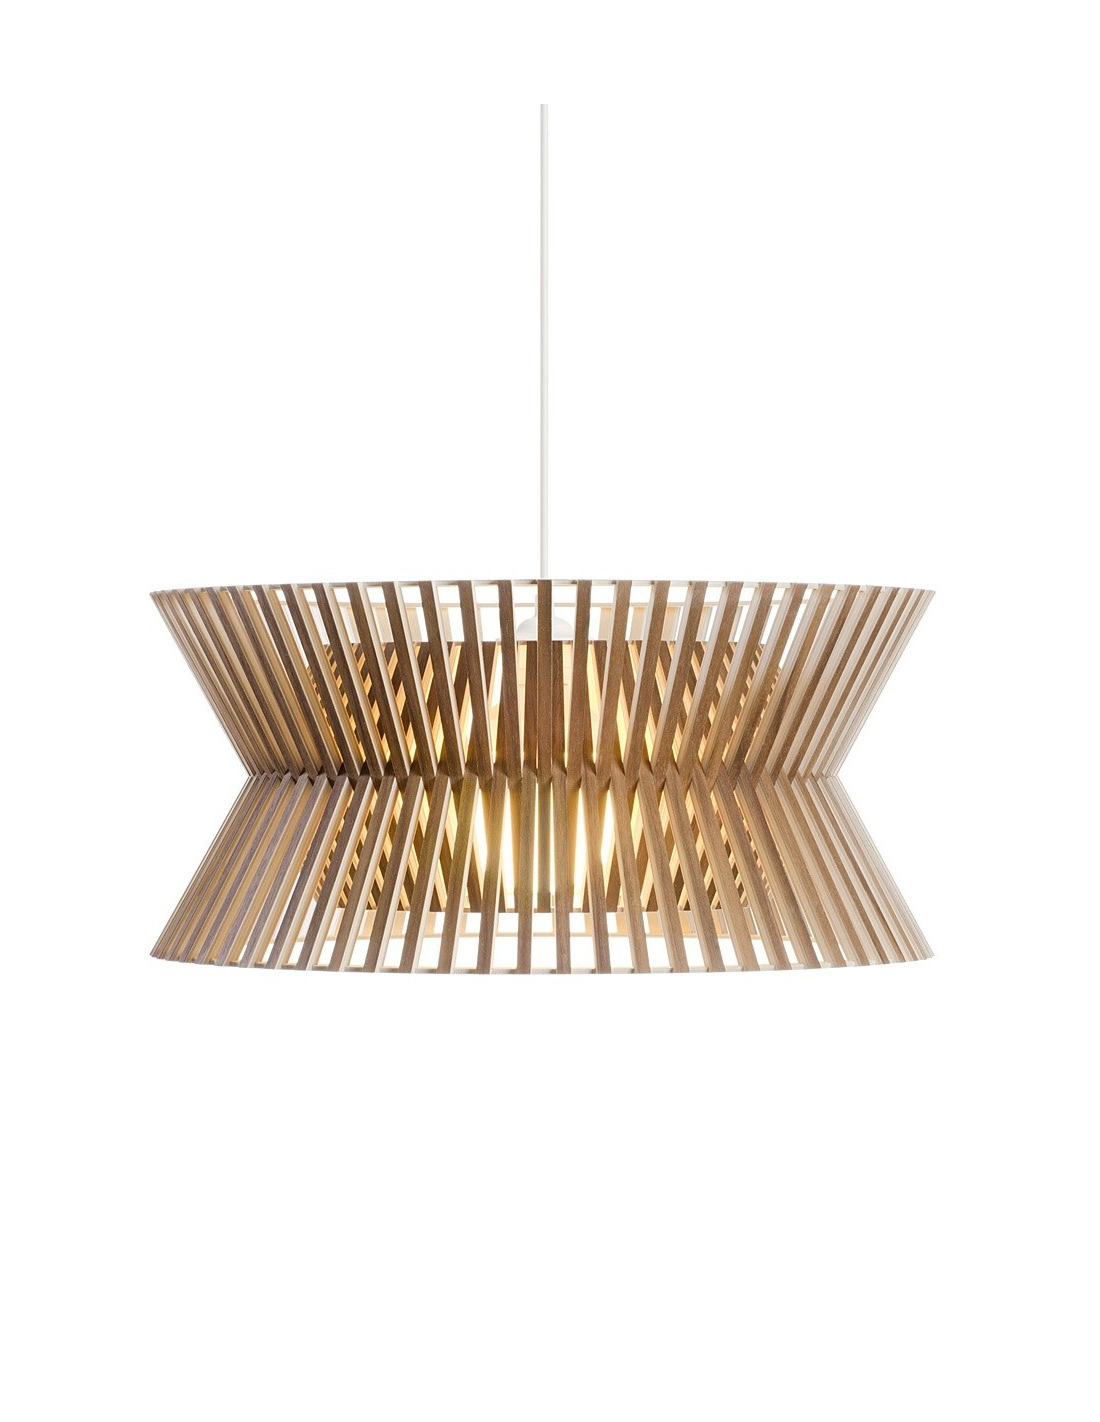 Suspension Au Design Scandinave Kontro 6000 En Bois Naturel Otoko